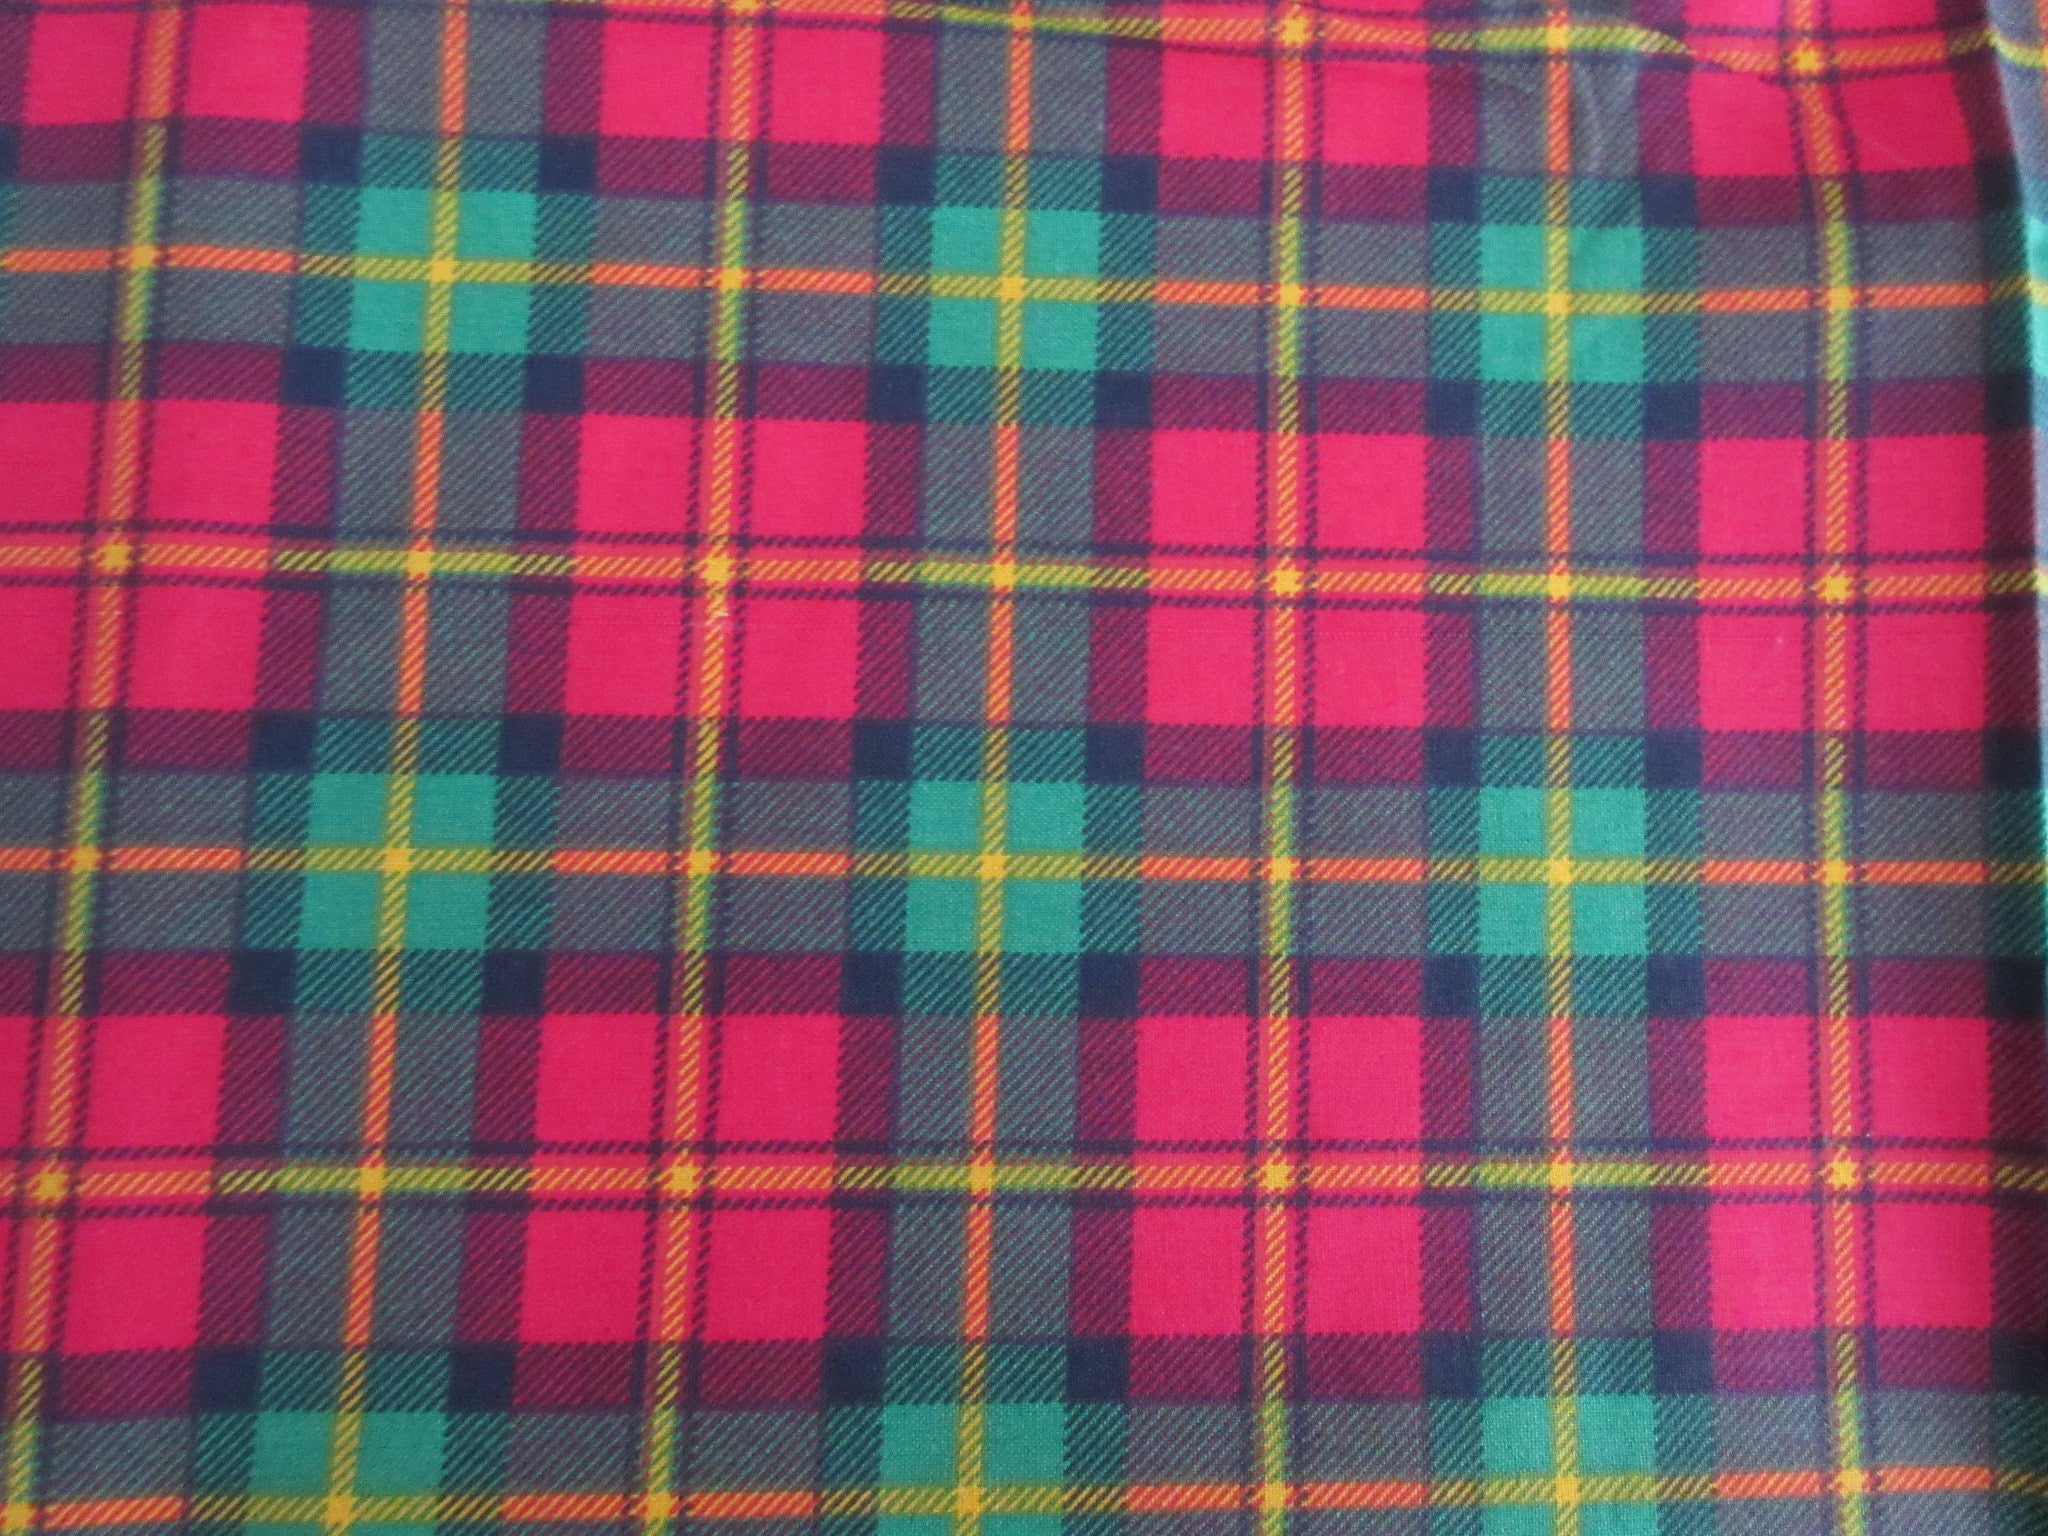 Red Green Christmas Plaid MWT Novelty Vintage Printed Tablecloth (70 X 51)